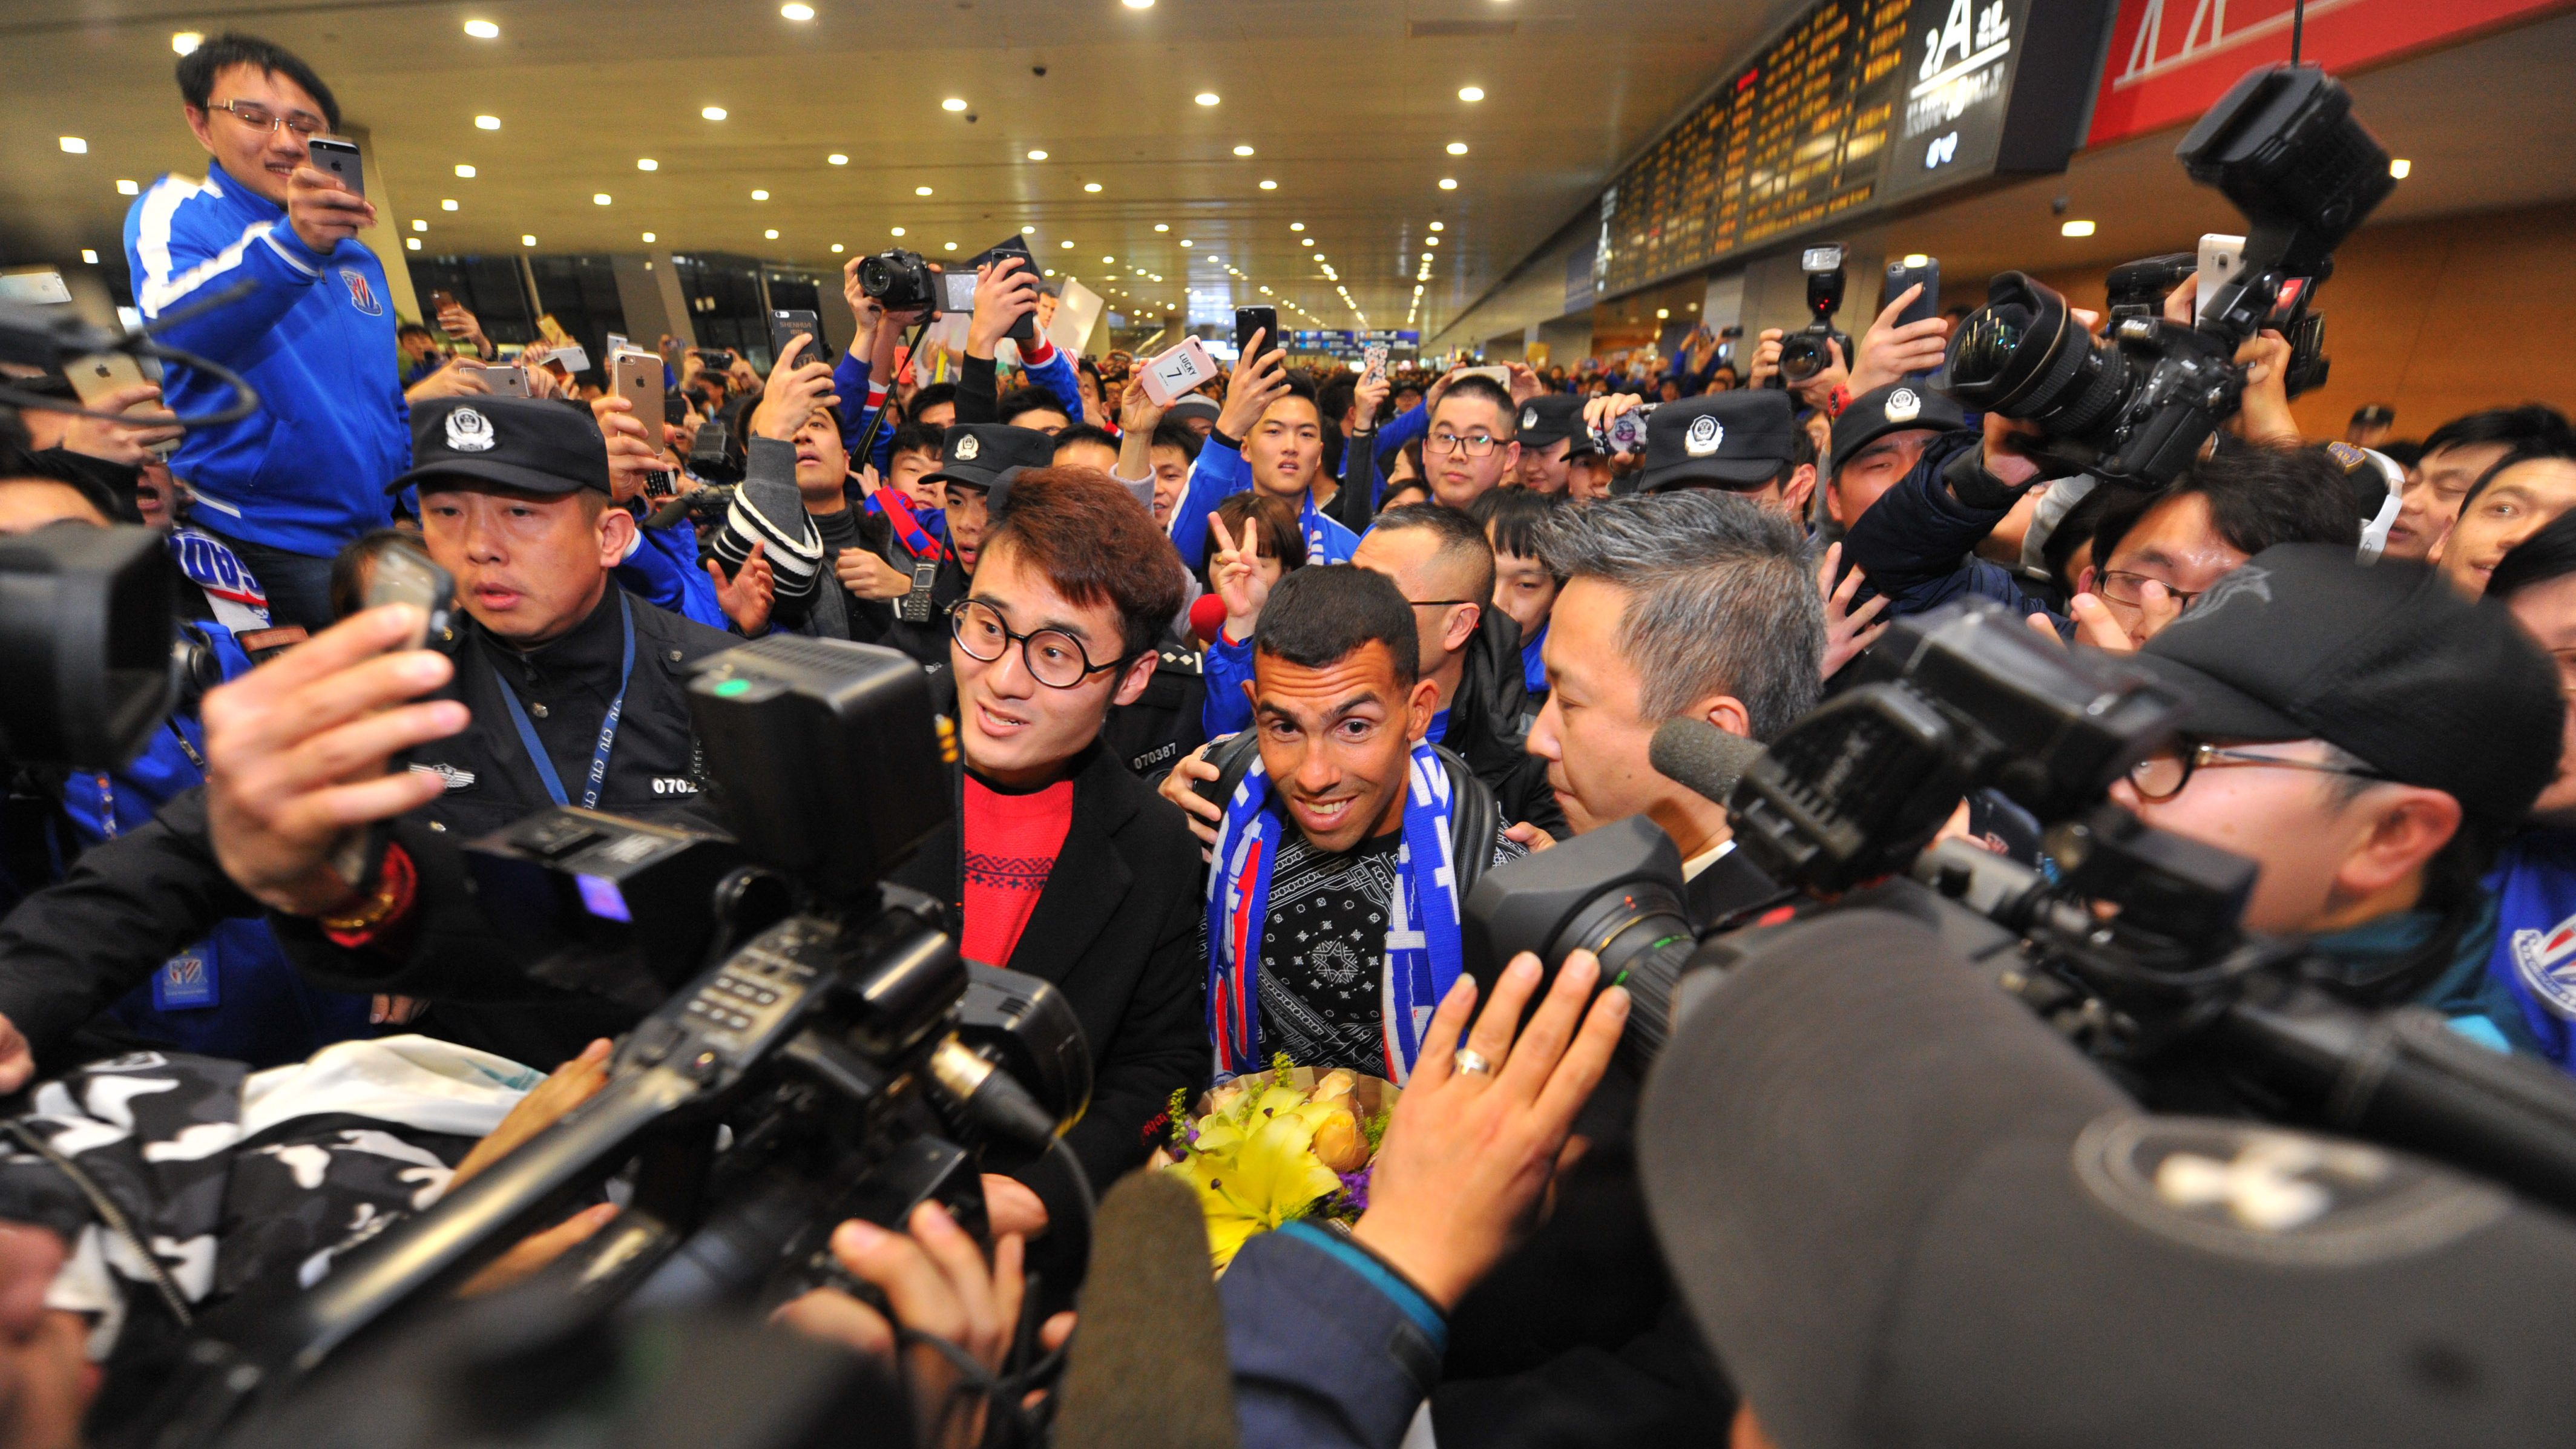 Argentine striker Carlos Tevez (C) makes his way through the crowd of fans upon arrival at Shanghai Pudong International Airport in Shanghai, China, 19 January 2017. The Argentine striker is reportedly to be world's top earning soccer player under his two-year contract with Shanghai Shenhua.